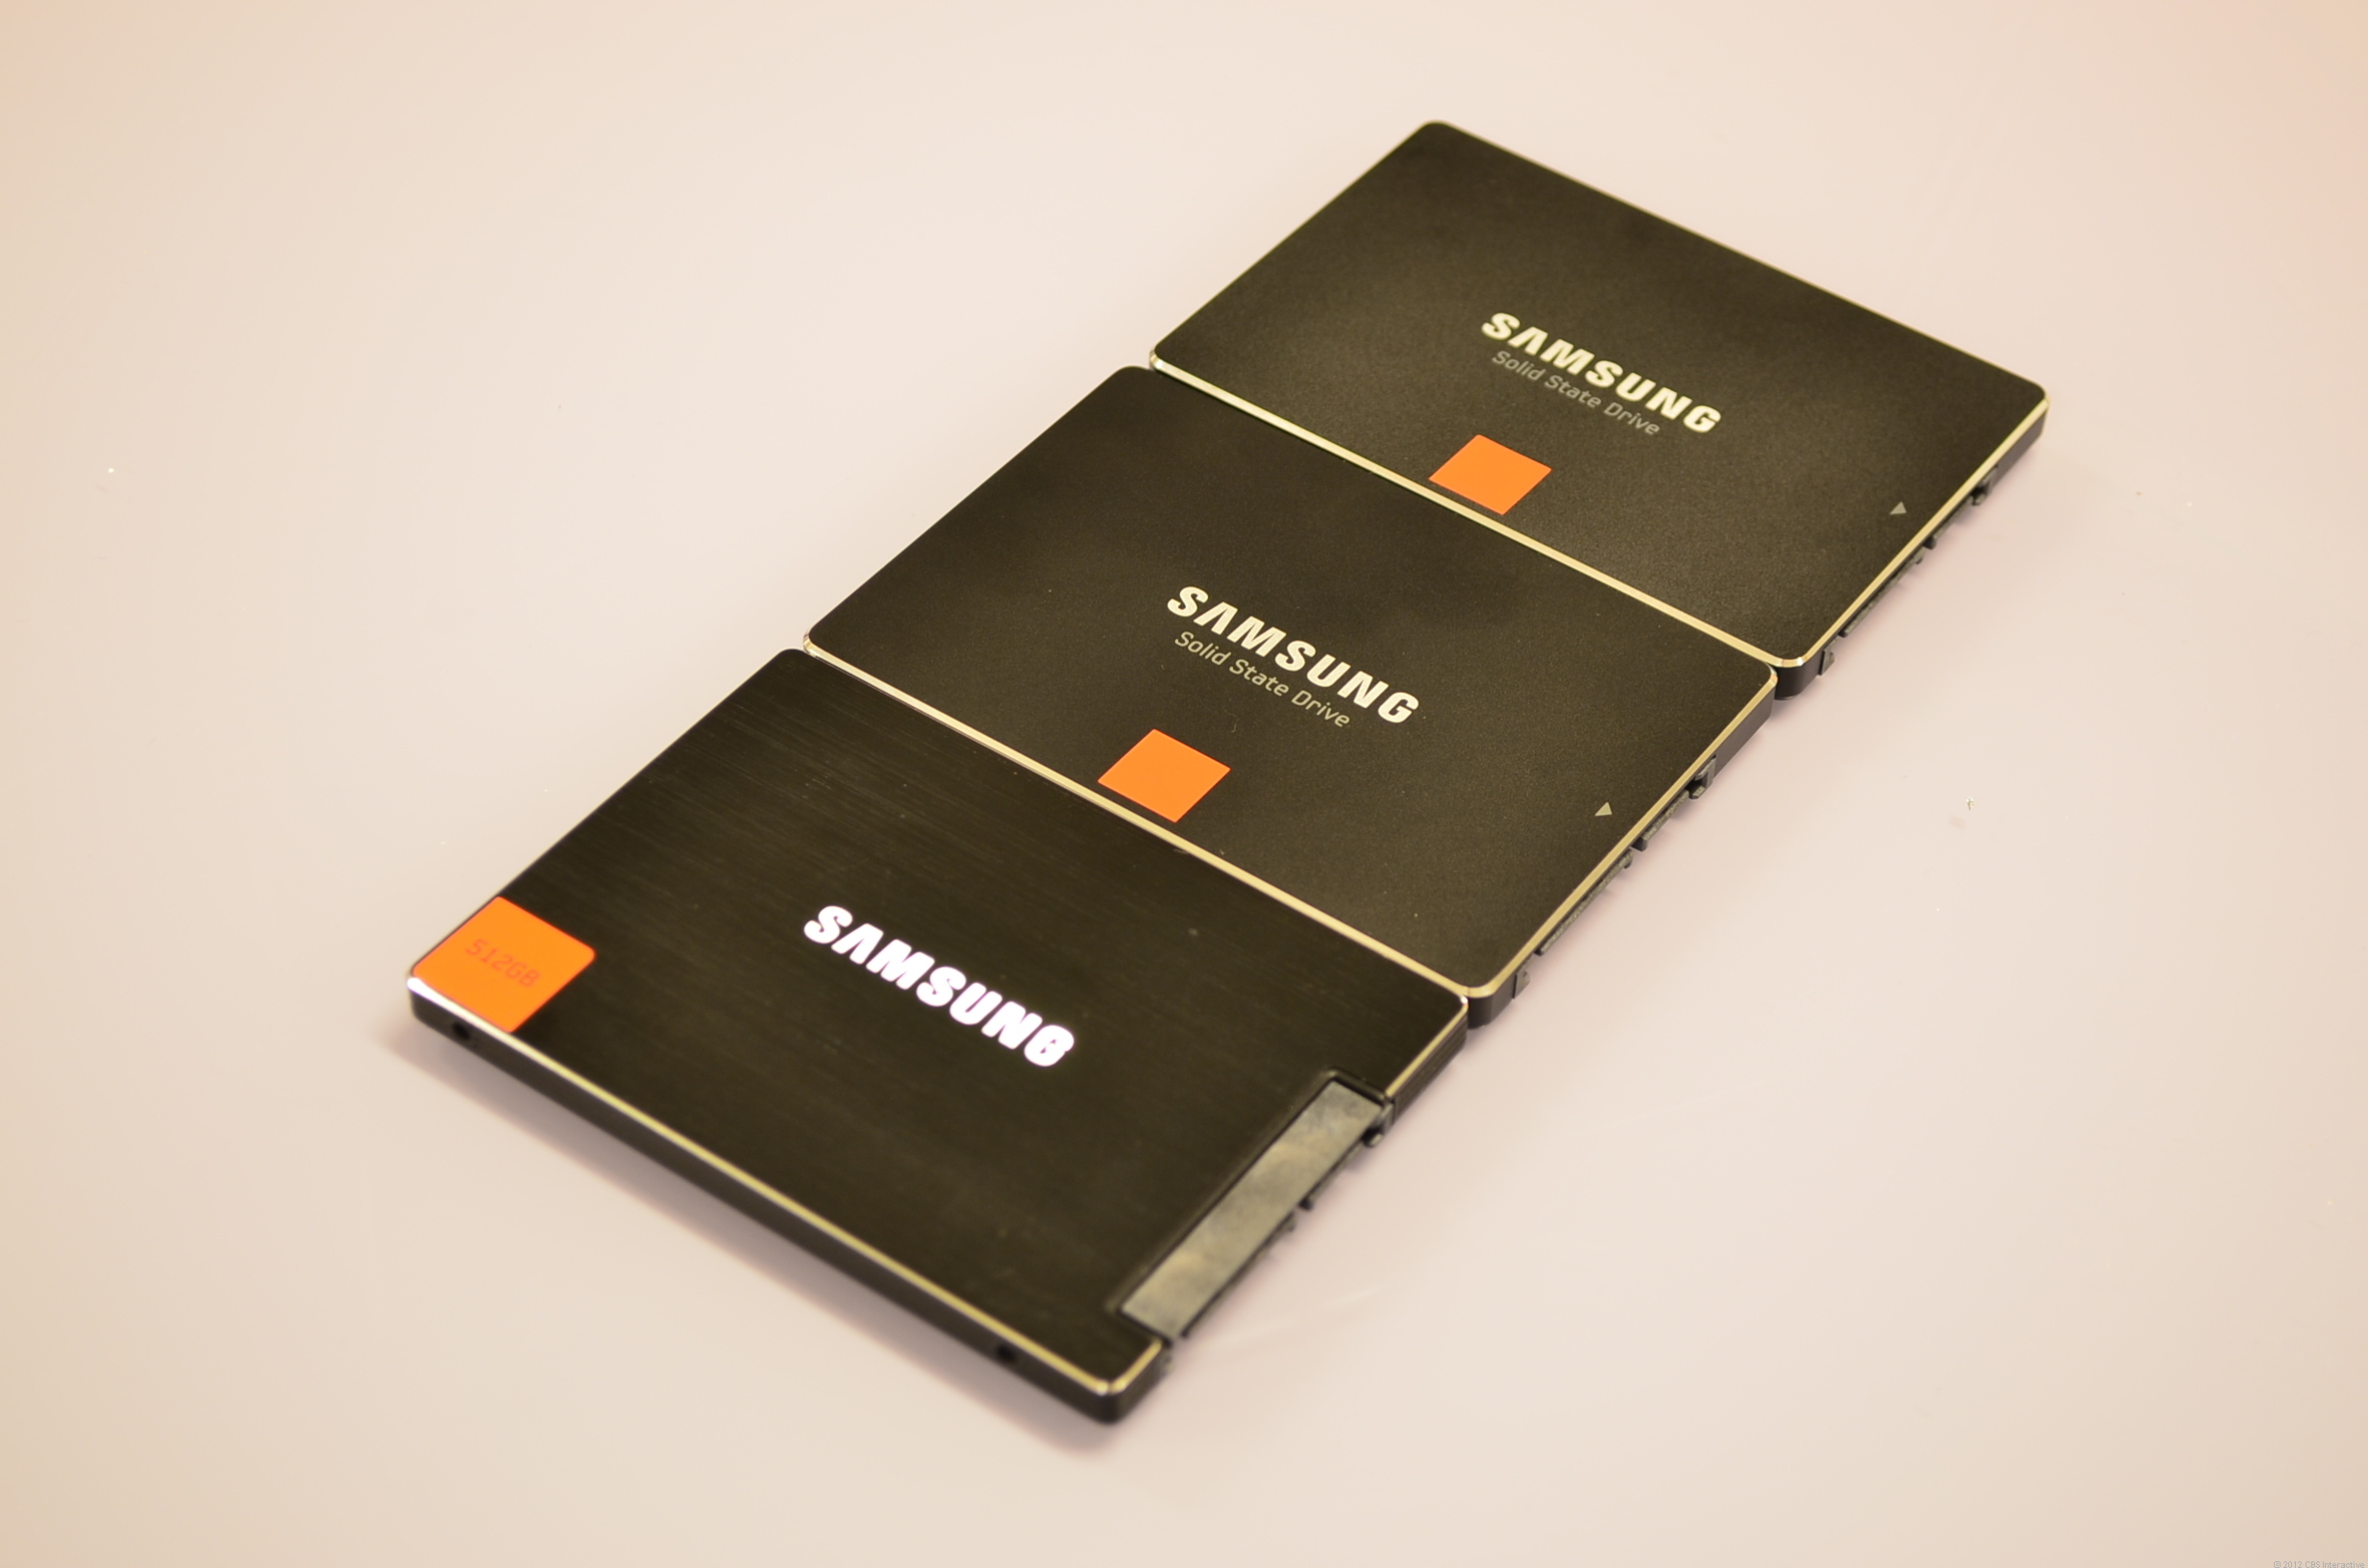 You can hardly tell Samsung's SSDs apart. From top to bottom are the 840 series, the 840 Pro, and the 830 series.